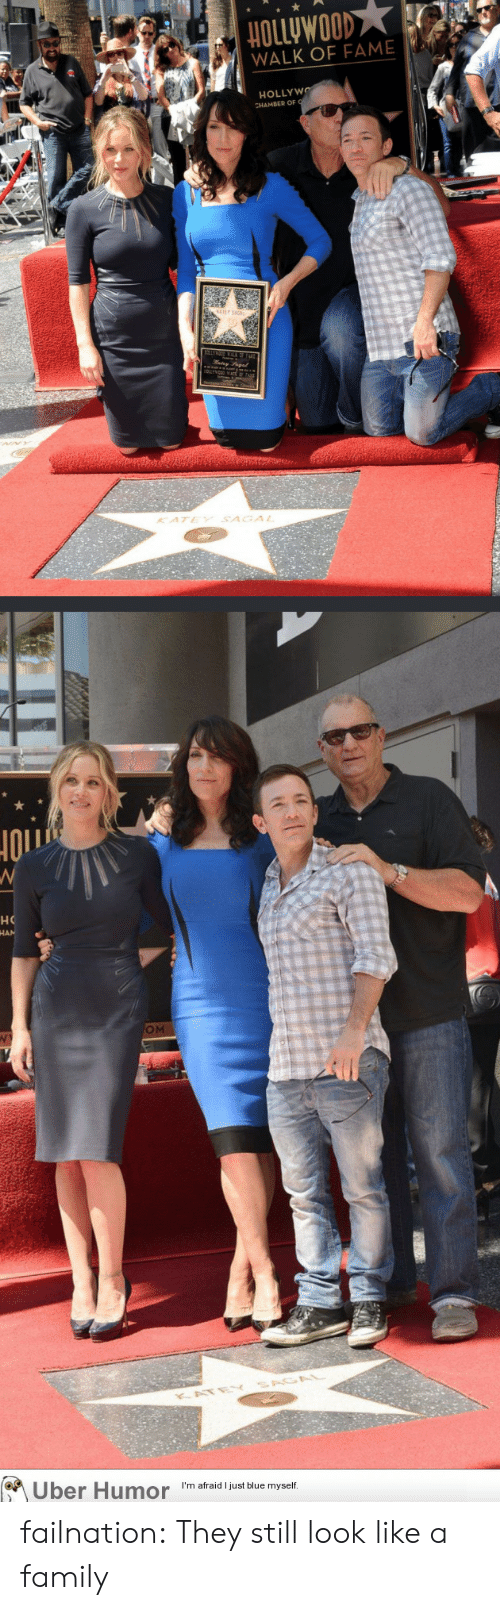 Family, Tumblr, and Uber: HOLLyWOOD  WALK OF FAME  HOLLYWO  KATEY SAGAL  но  OM  KATE  Uber Humor  I'm afraid I just blue myself. failnation:  They still look like a family